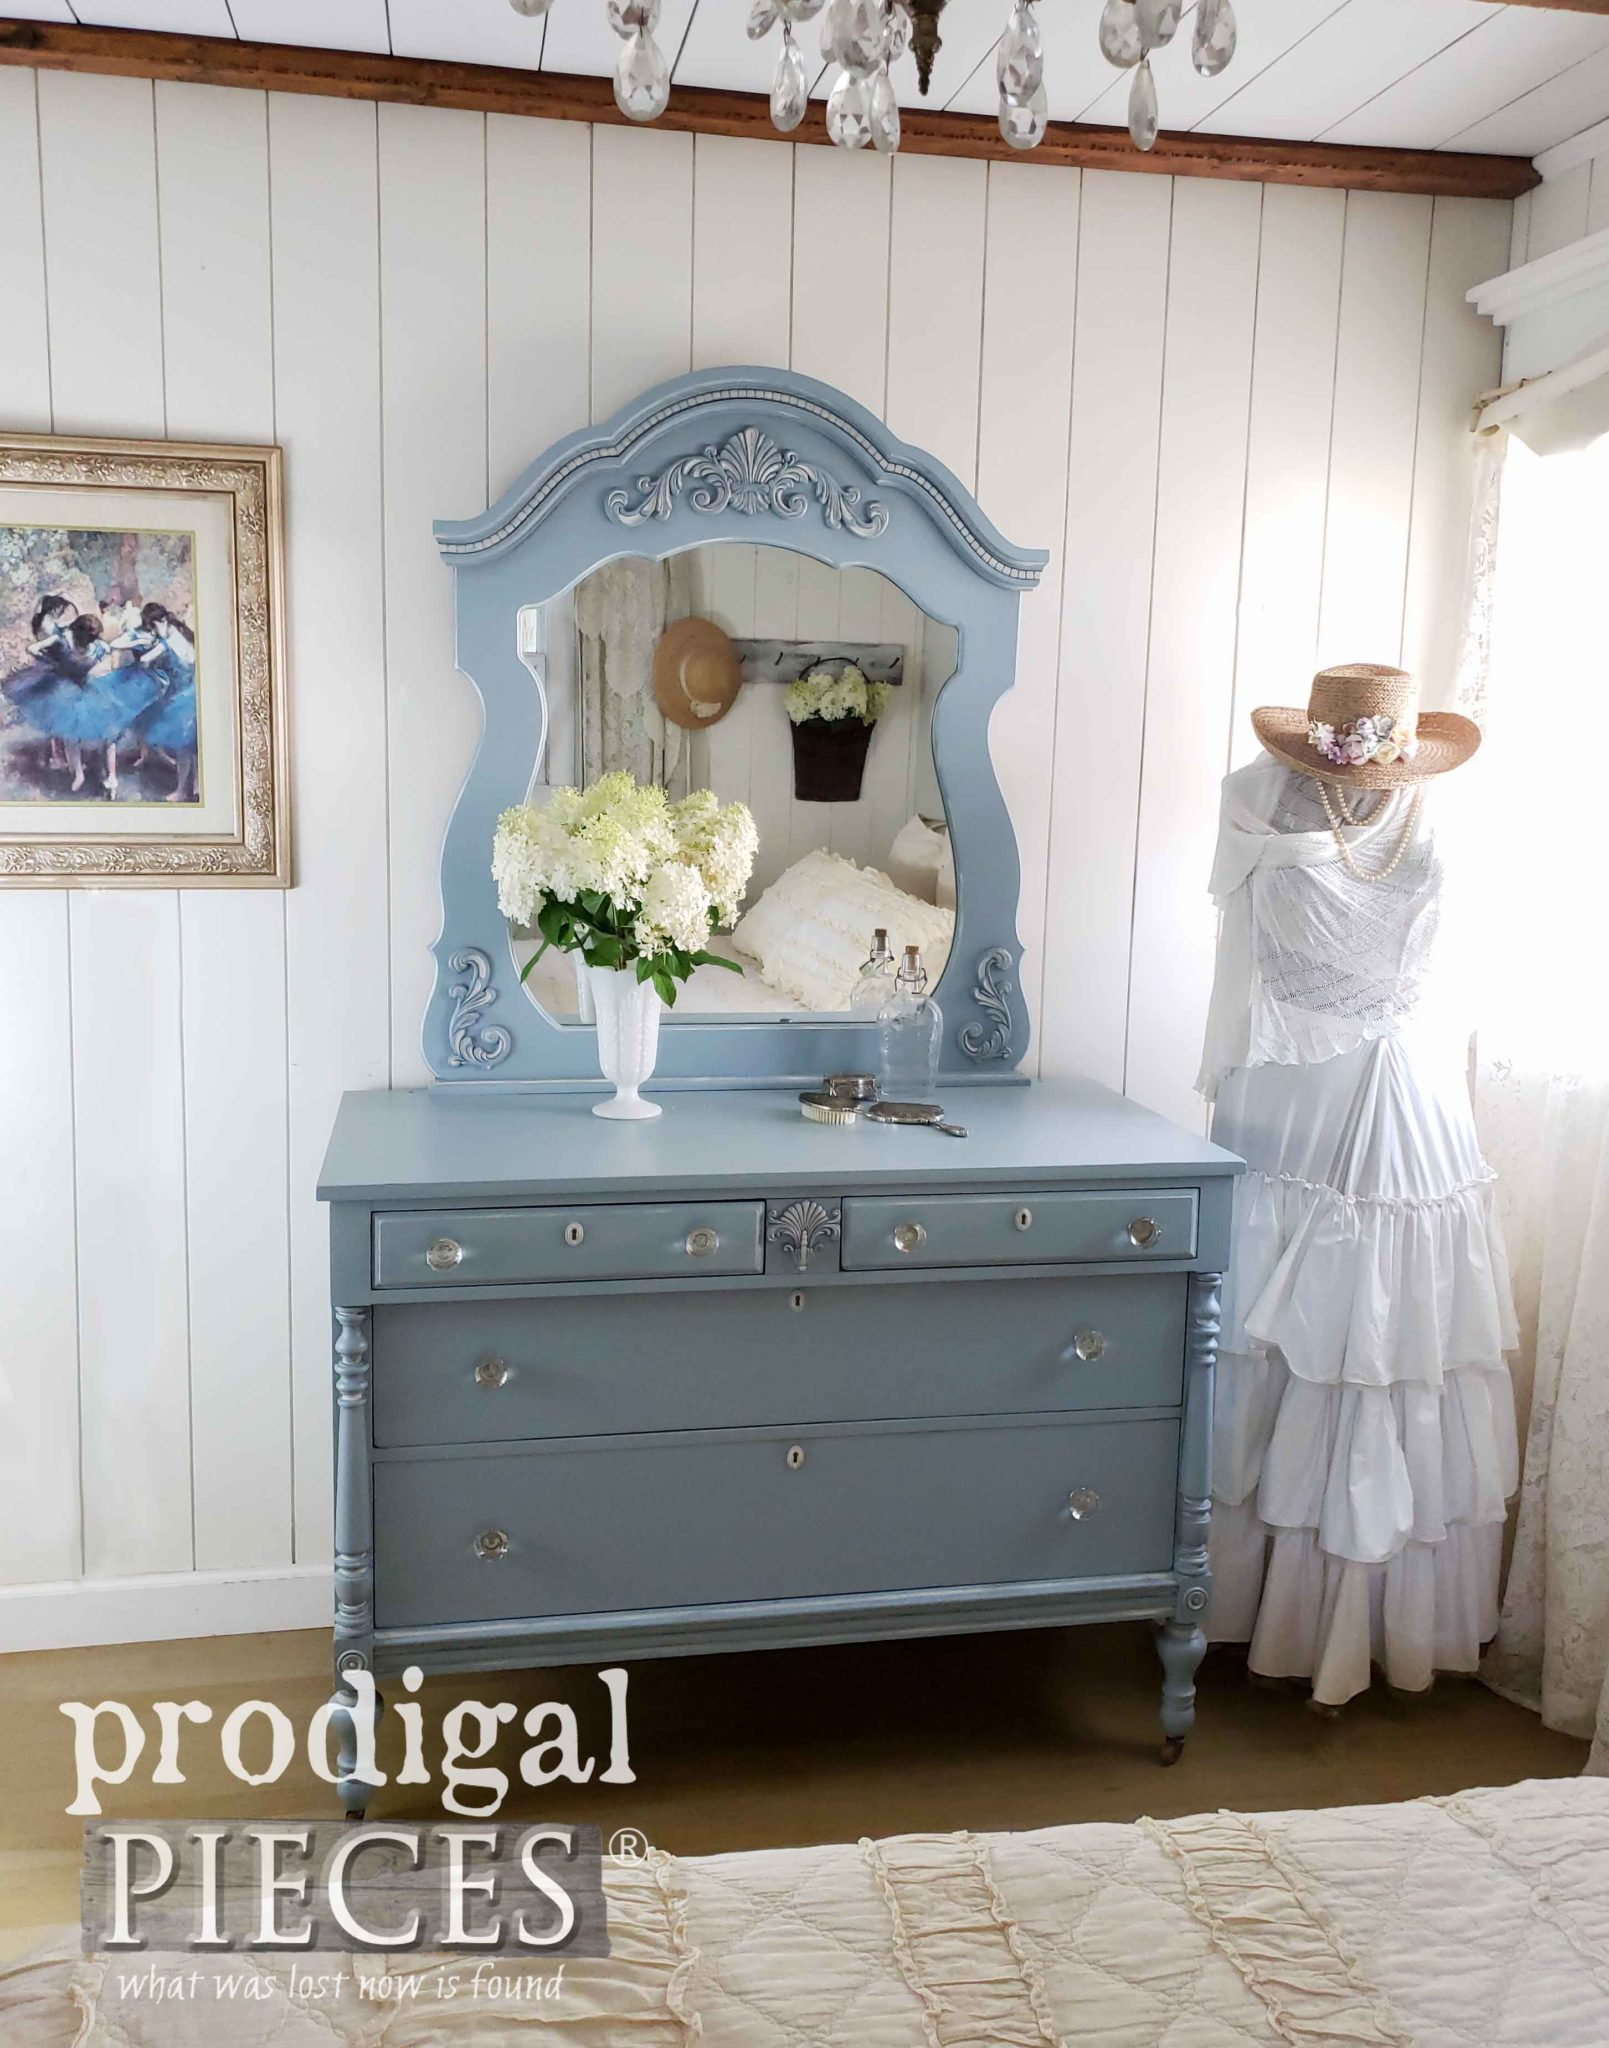 Vintage Blue Mirrored Dresser with Glass Knobs | Made New by Larissa of Prodigal Pieces | prodigalpieces.com